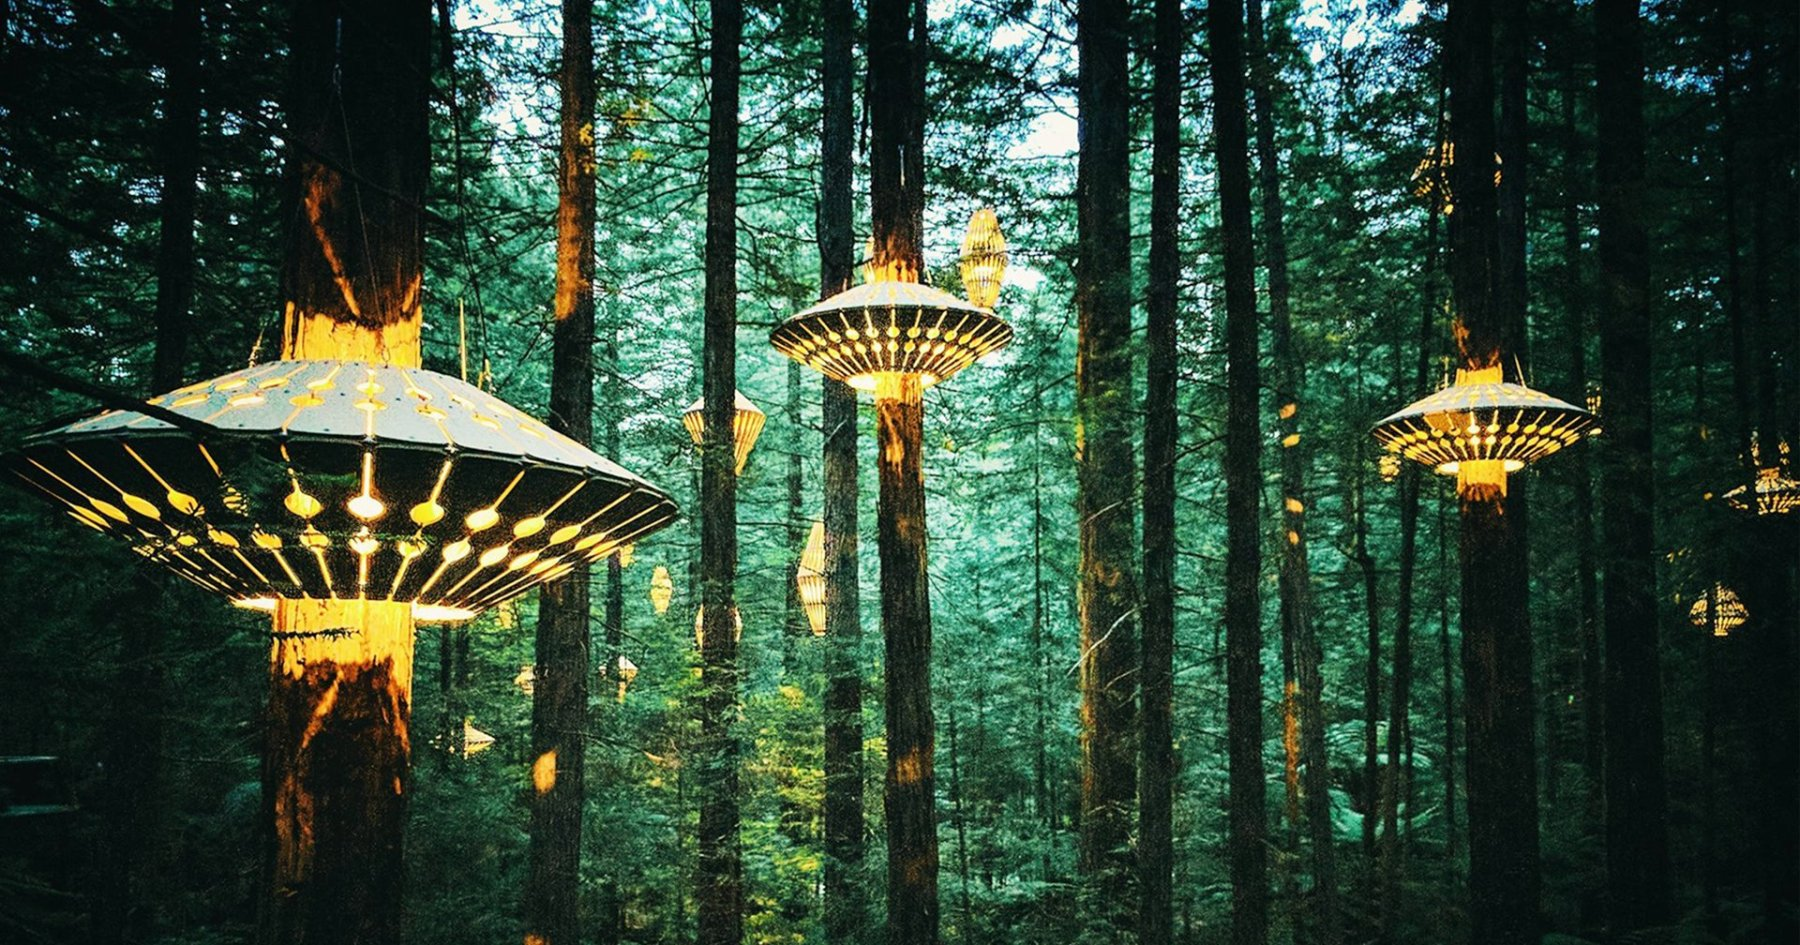 The World's 12 Most Interesting Nocturnal Vacations